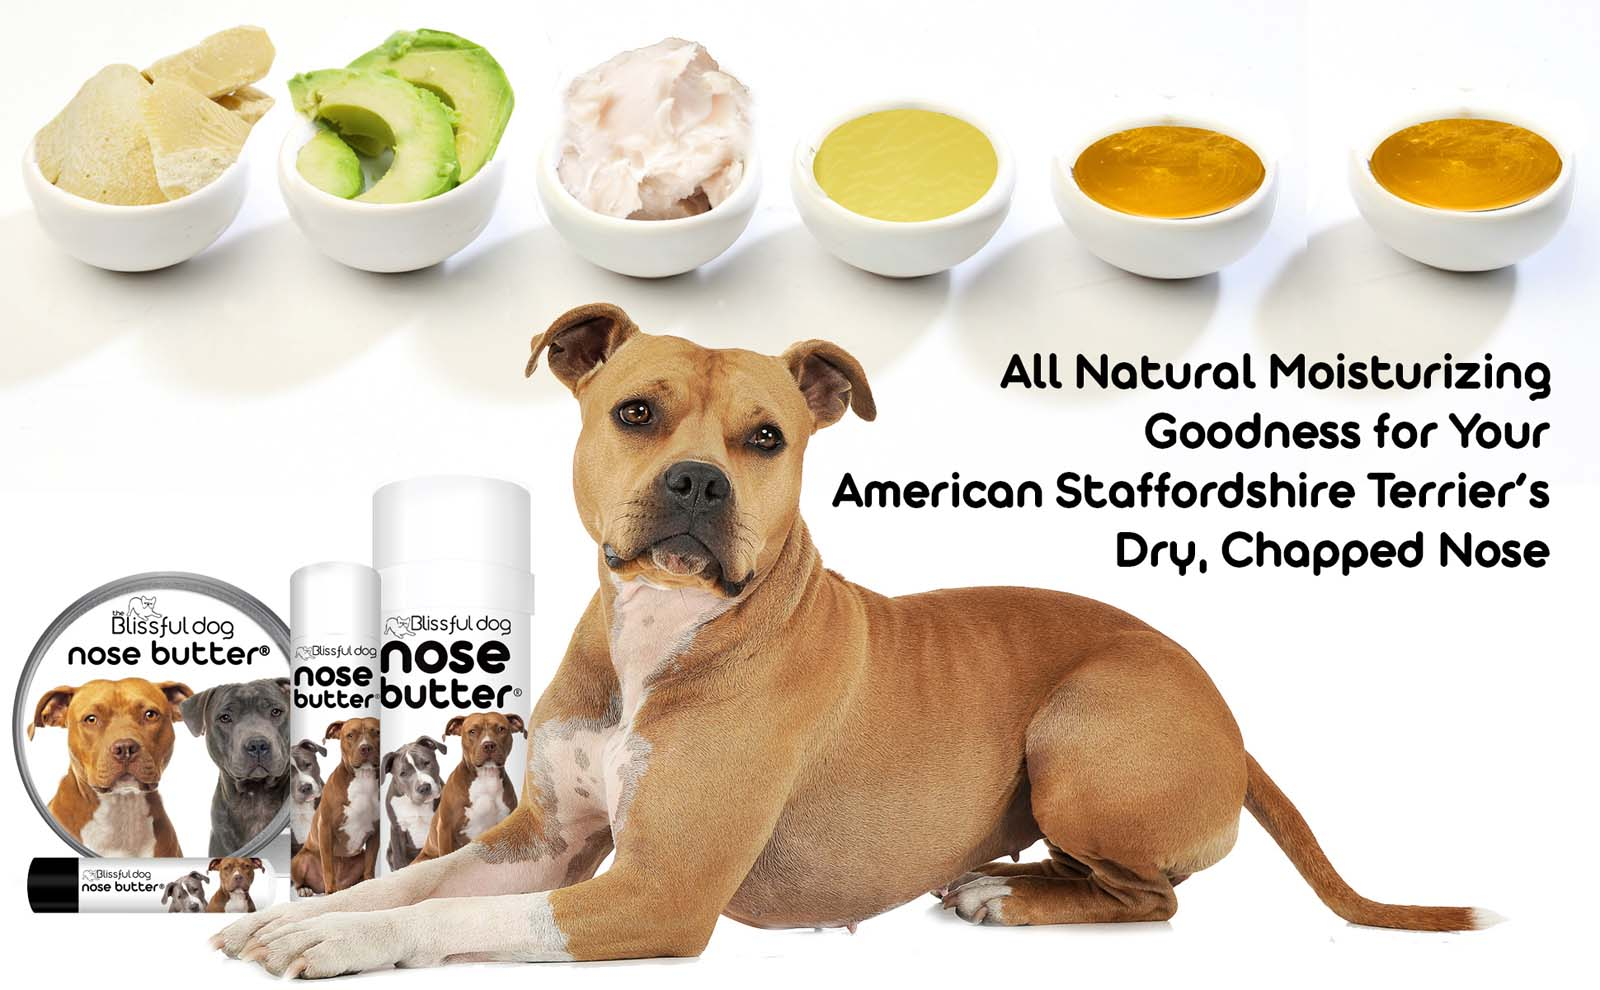 american staffordshire terrier dry nose